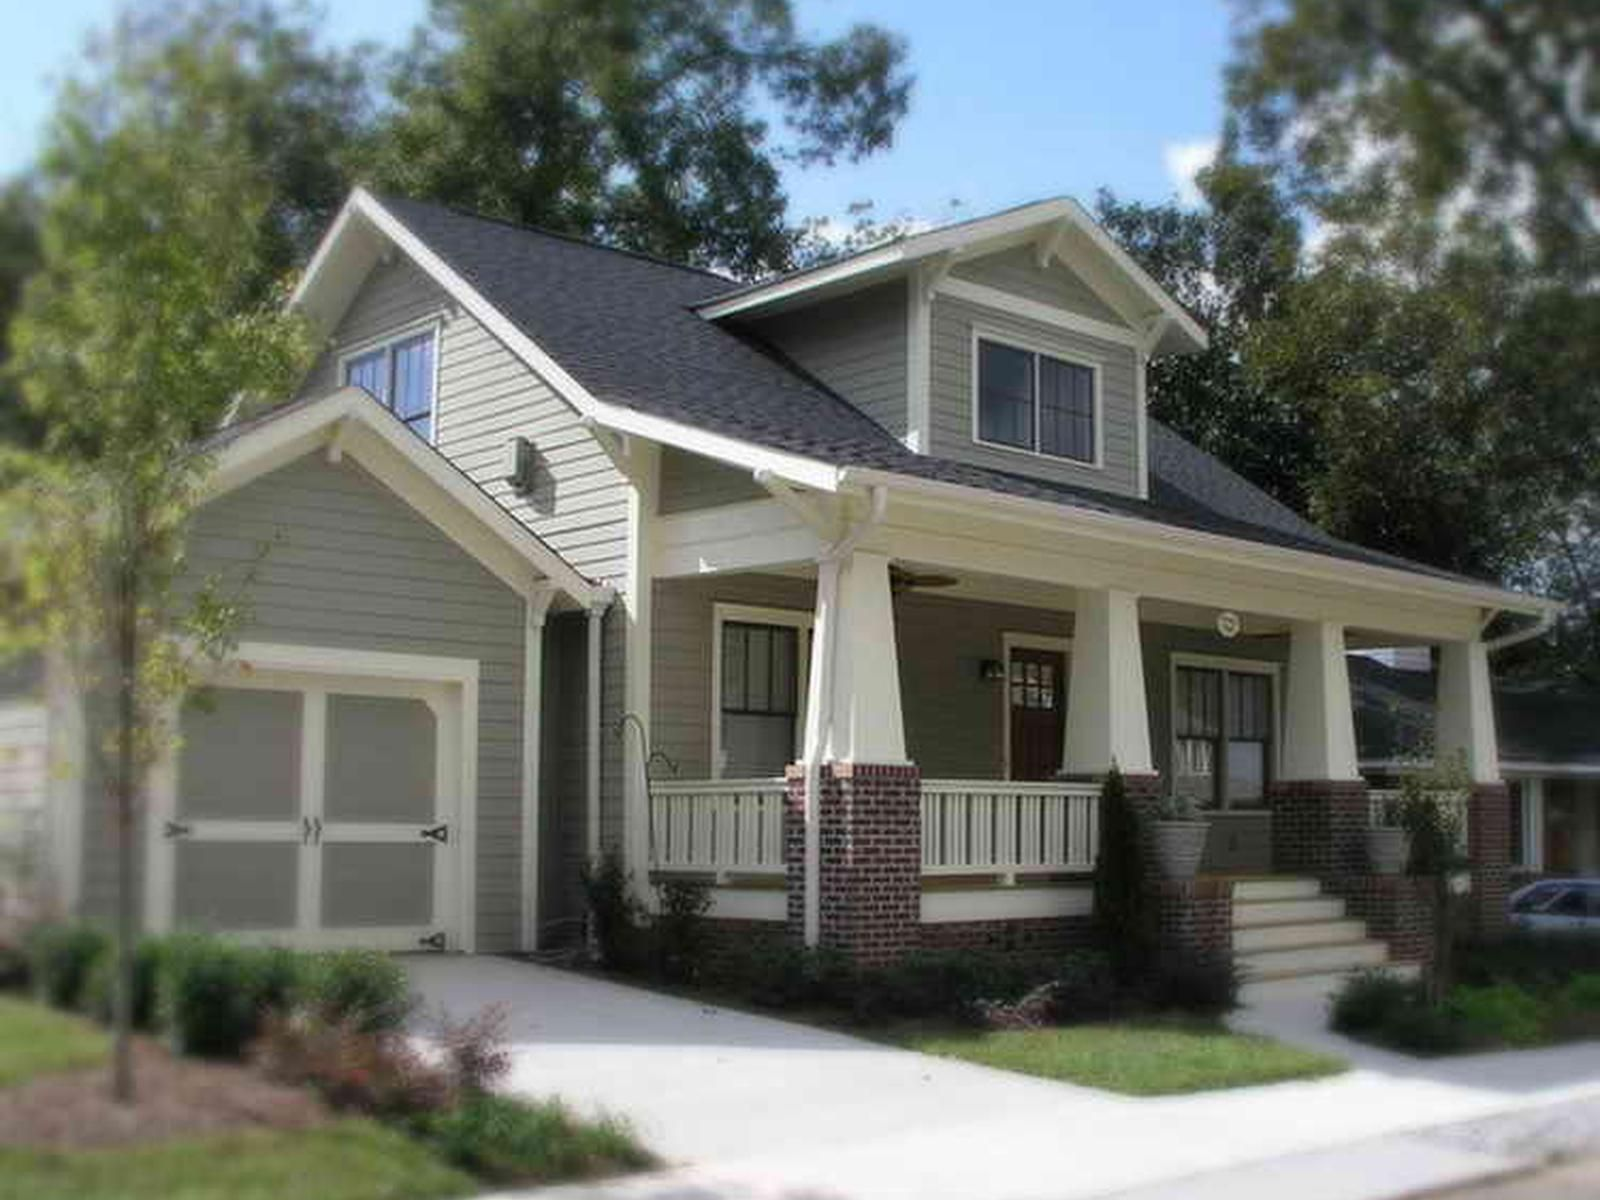 Craftsman style bungalow house colors craftsman bungalow for Craftsman home builders